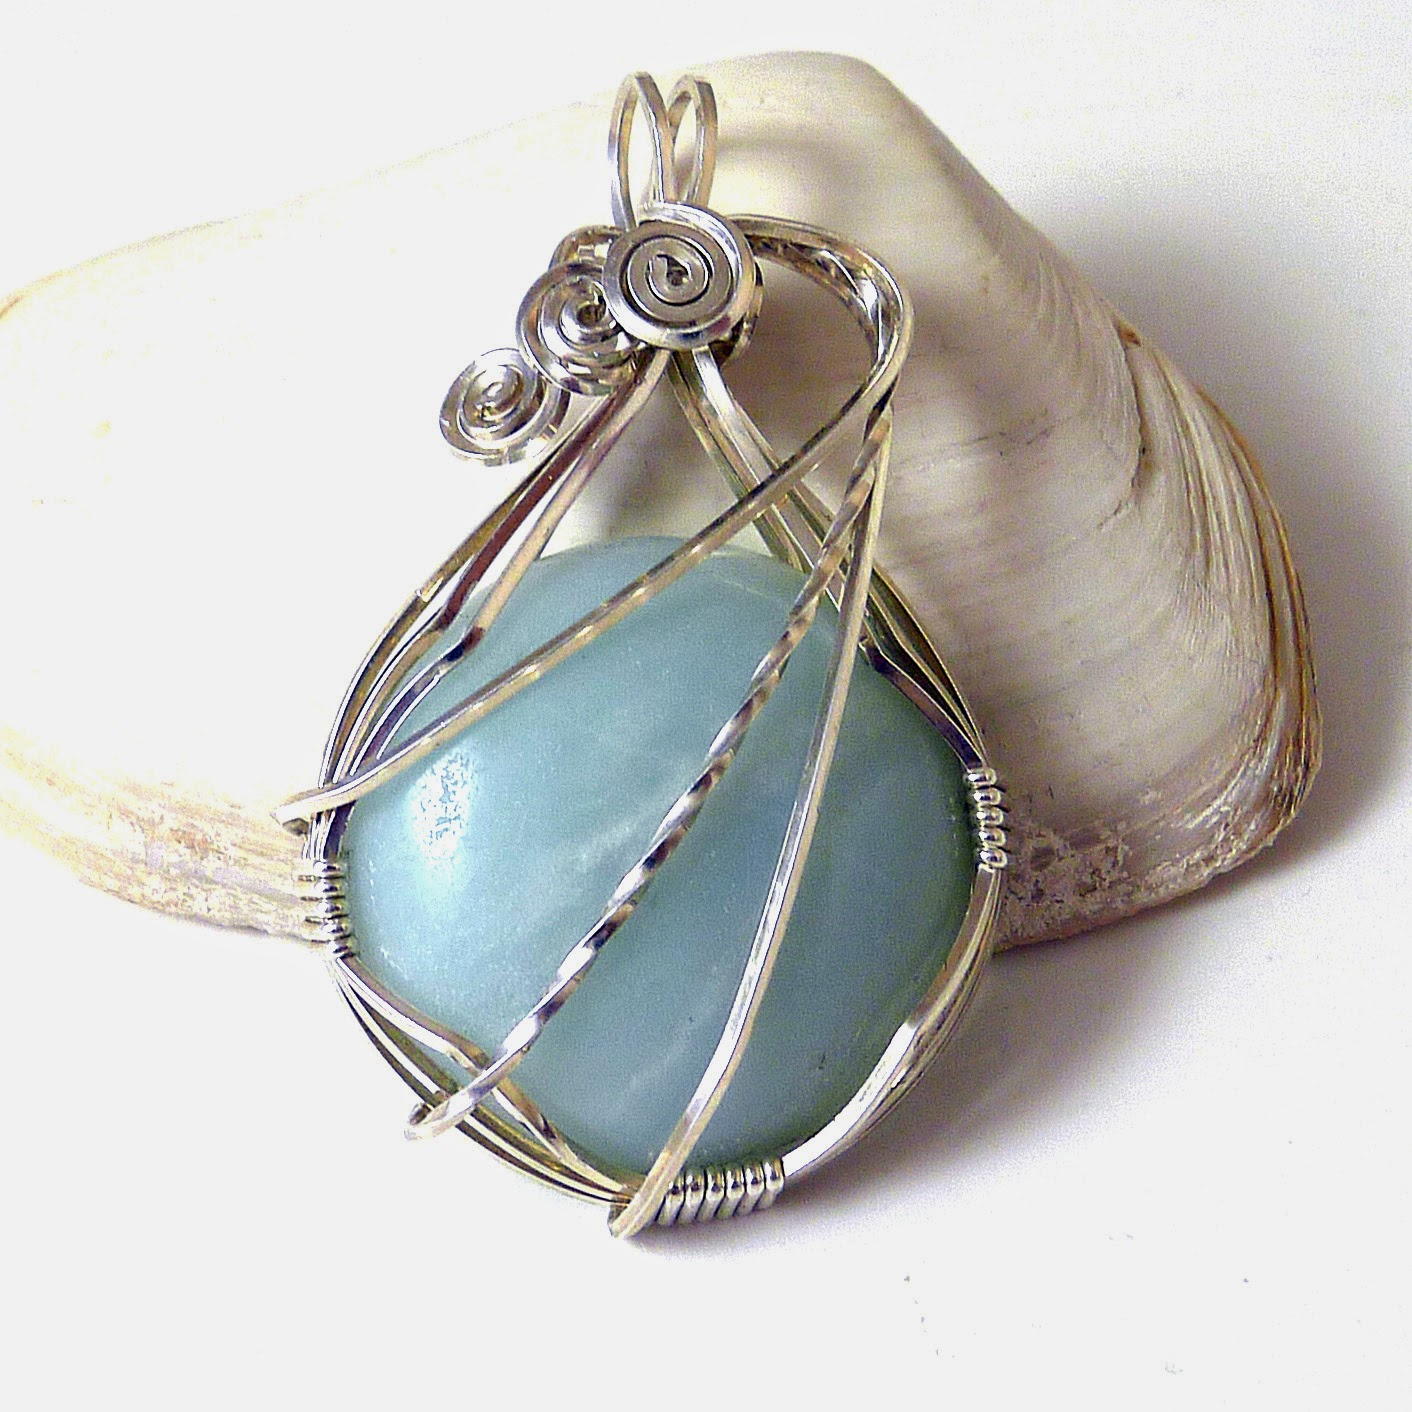 http://www.shazzabethcreations.co.nz/#!product/prd1/2462207761/amazonite-and-sterling-silver-pendant